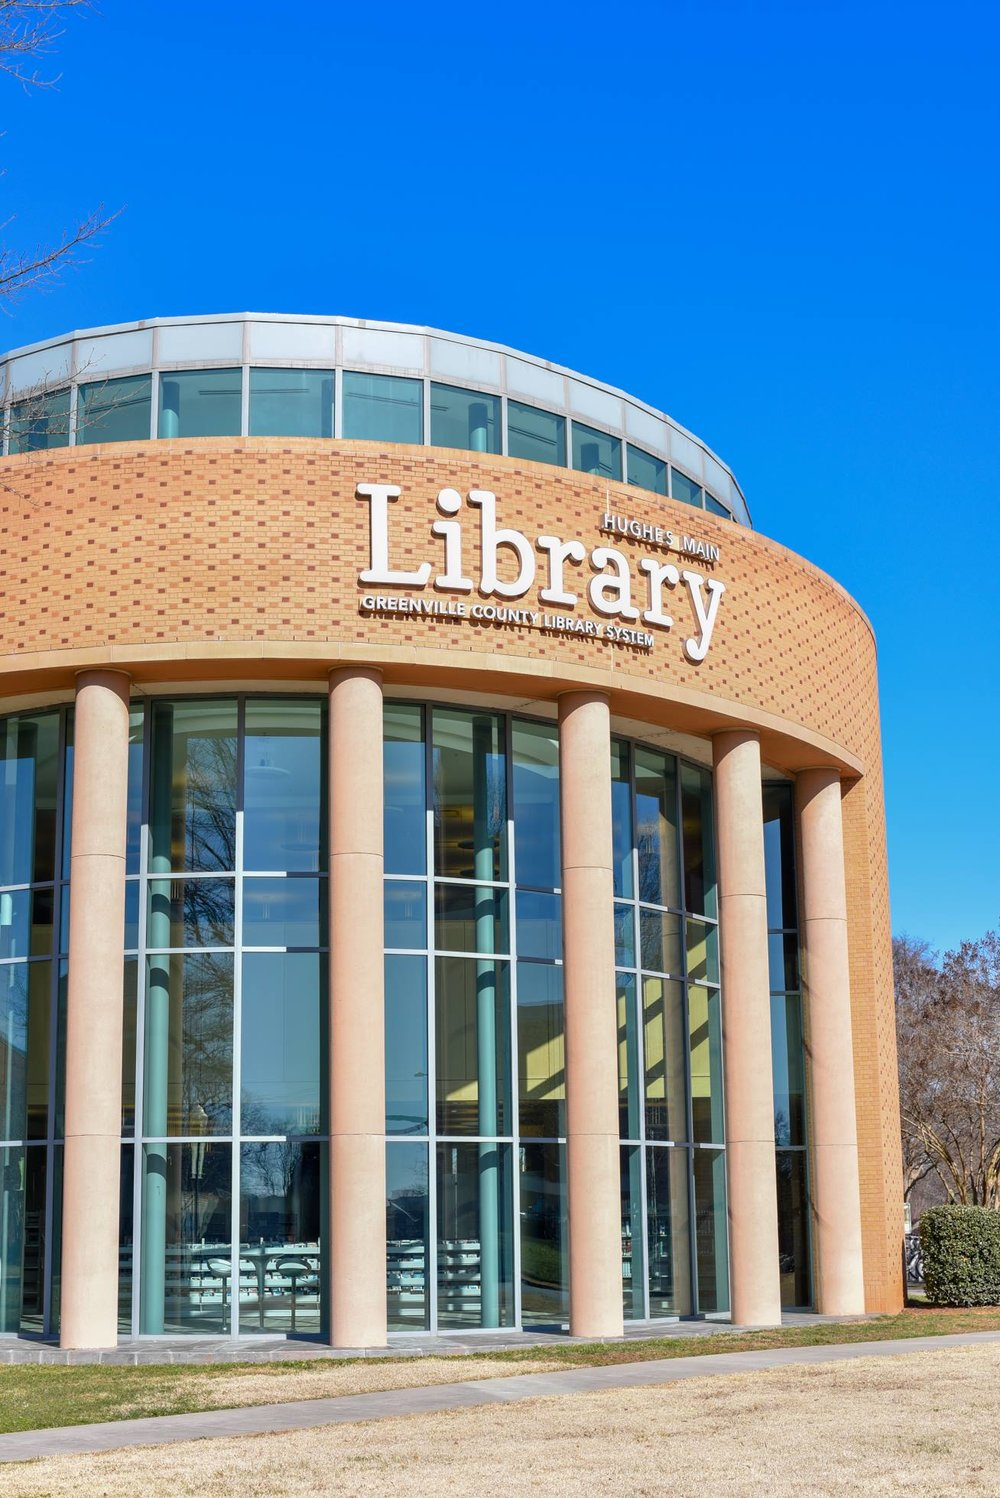 The Hughes Main Library in downtown Greenville